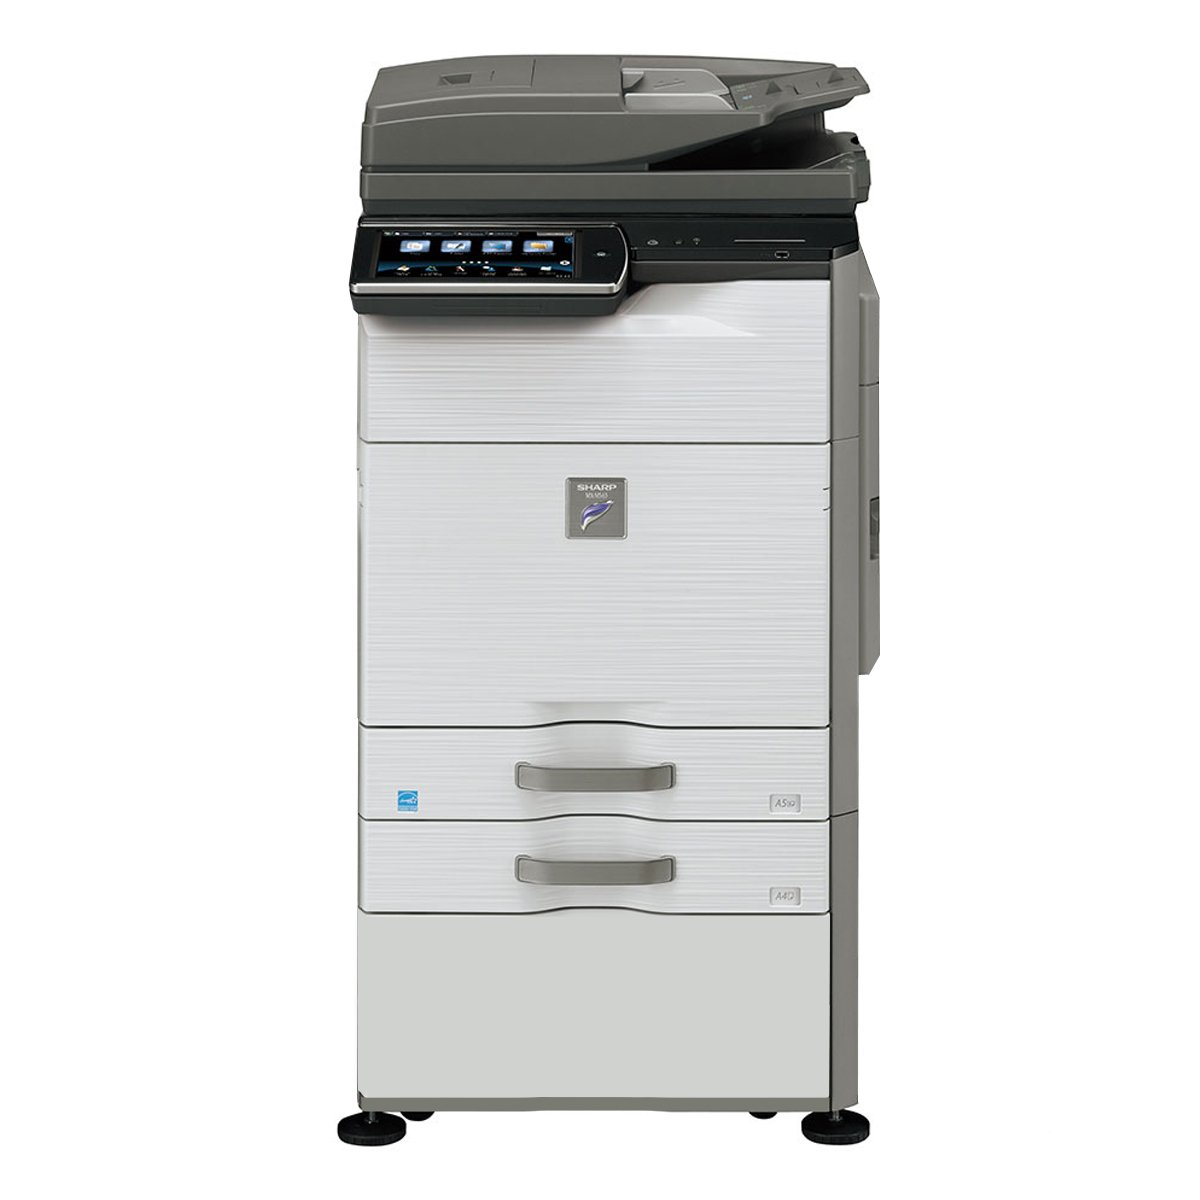 SHARP MX-M753 PRINTER TWAIN TREIBER WINDOWS 8